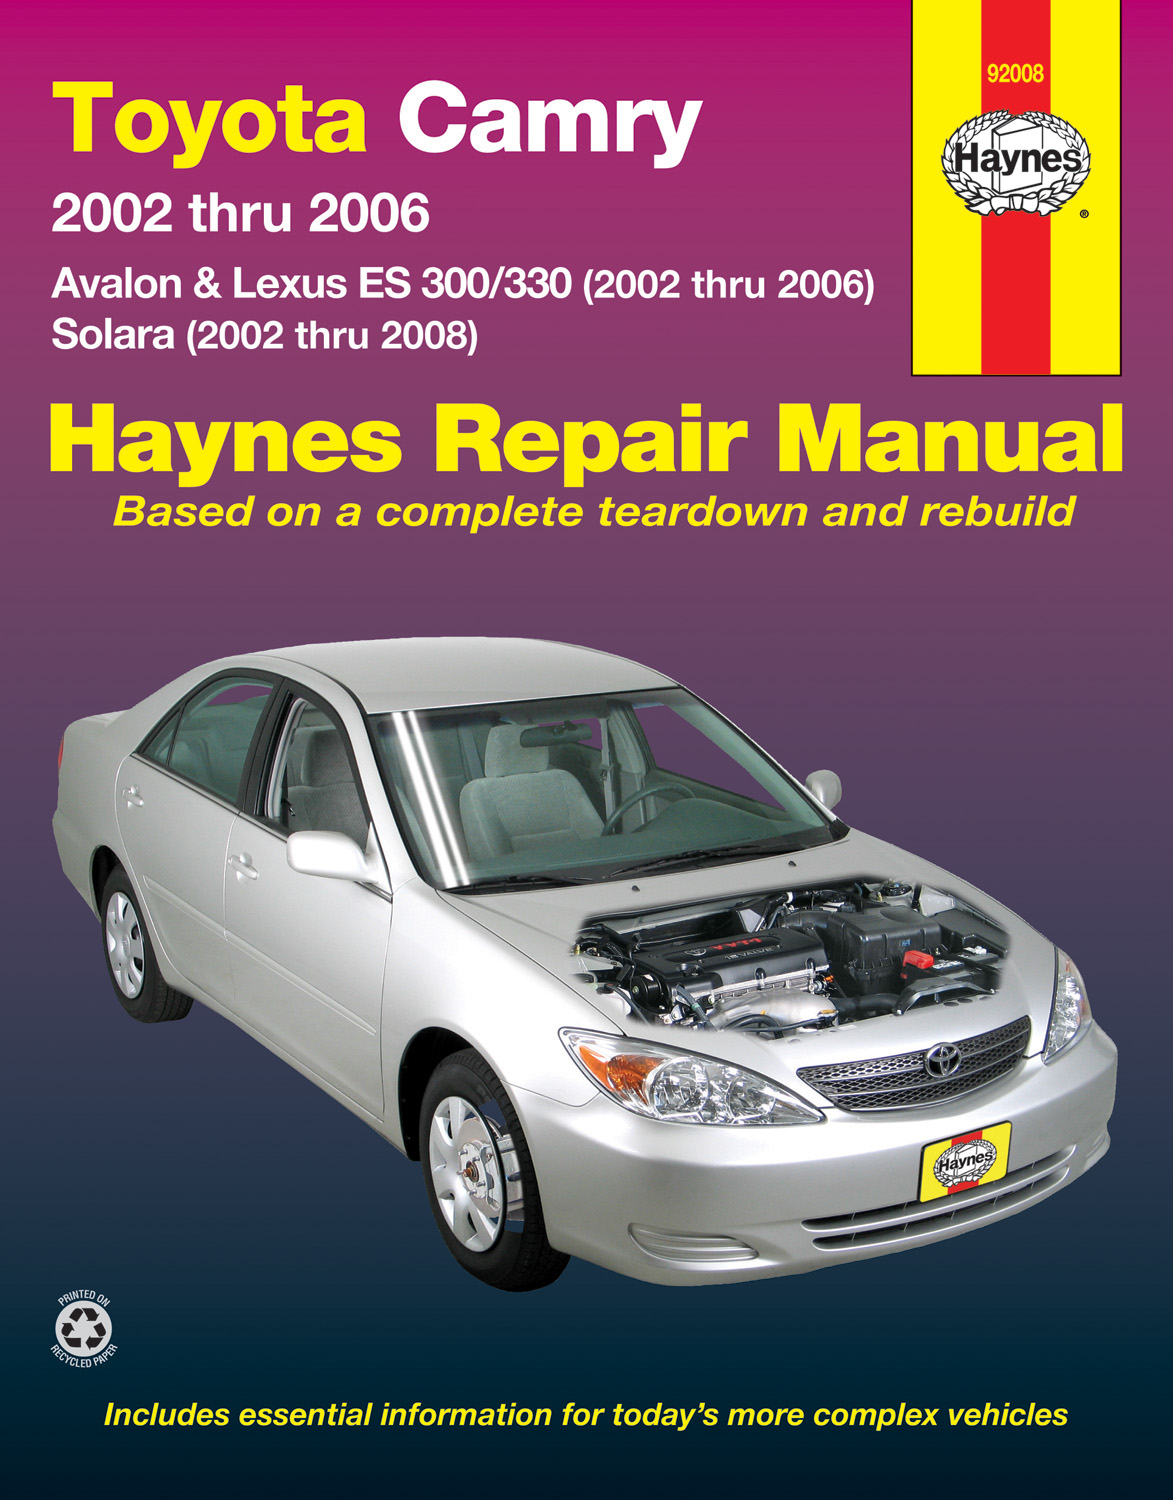 Sentinel Toyota Camry Avalon Lexus ES 300/330 WORKSHOP REPAIR SERVICE MANUAL  HAYNES BOOK